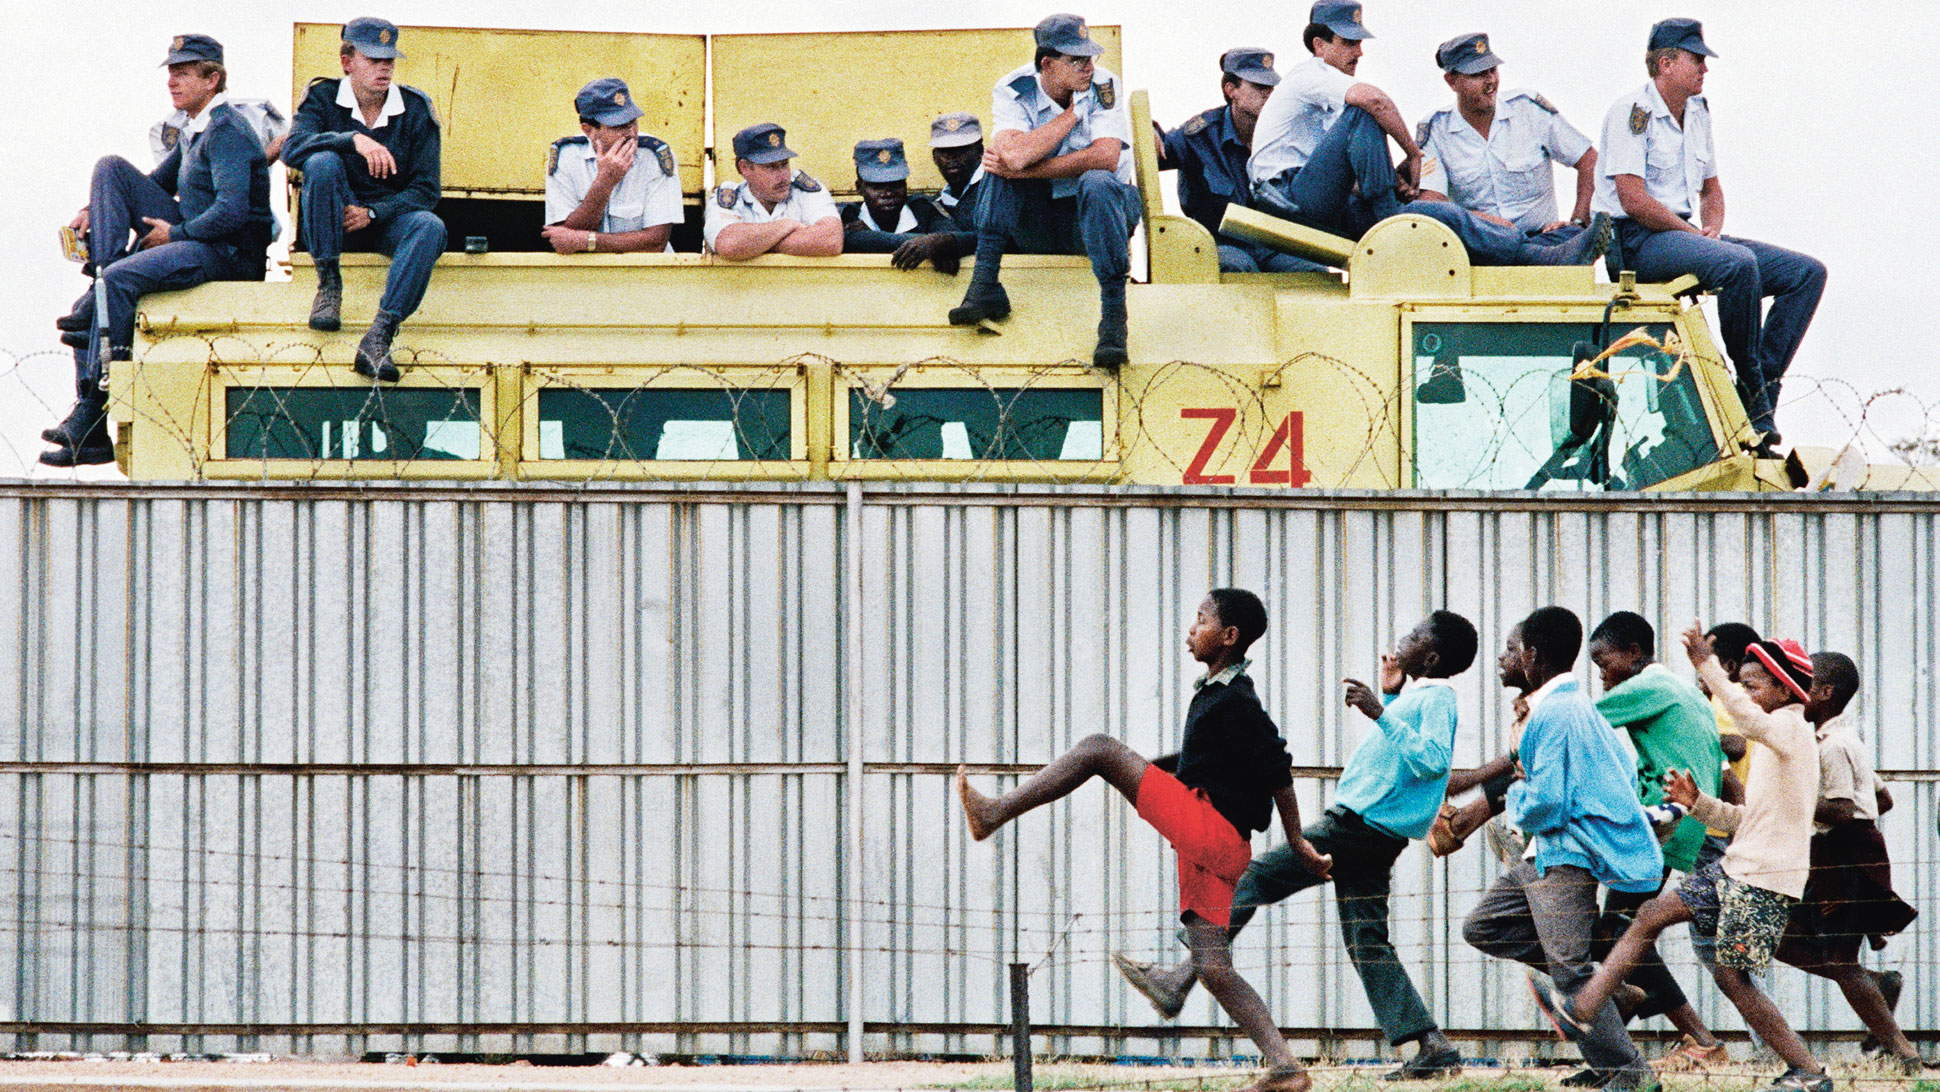 THEN: Youths taunt police during an ANC political rally at the Sam Ntuli Sports Stadium, Thokoza, South Africa, 1991.